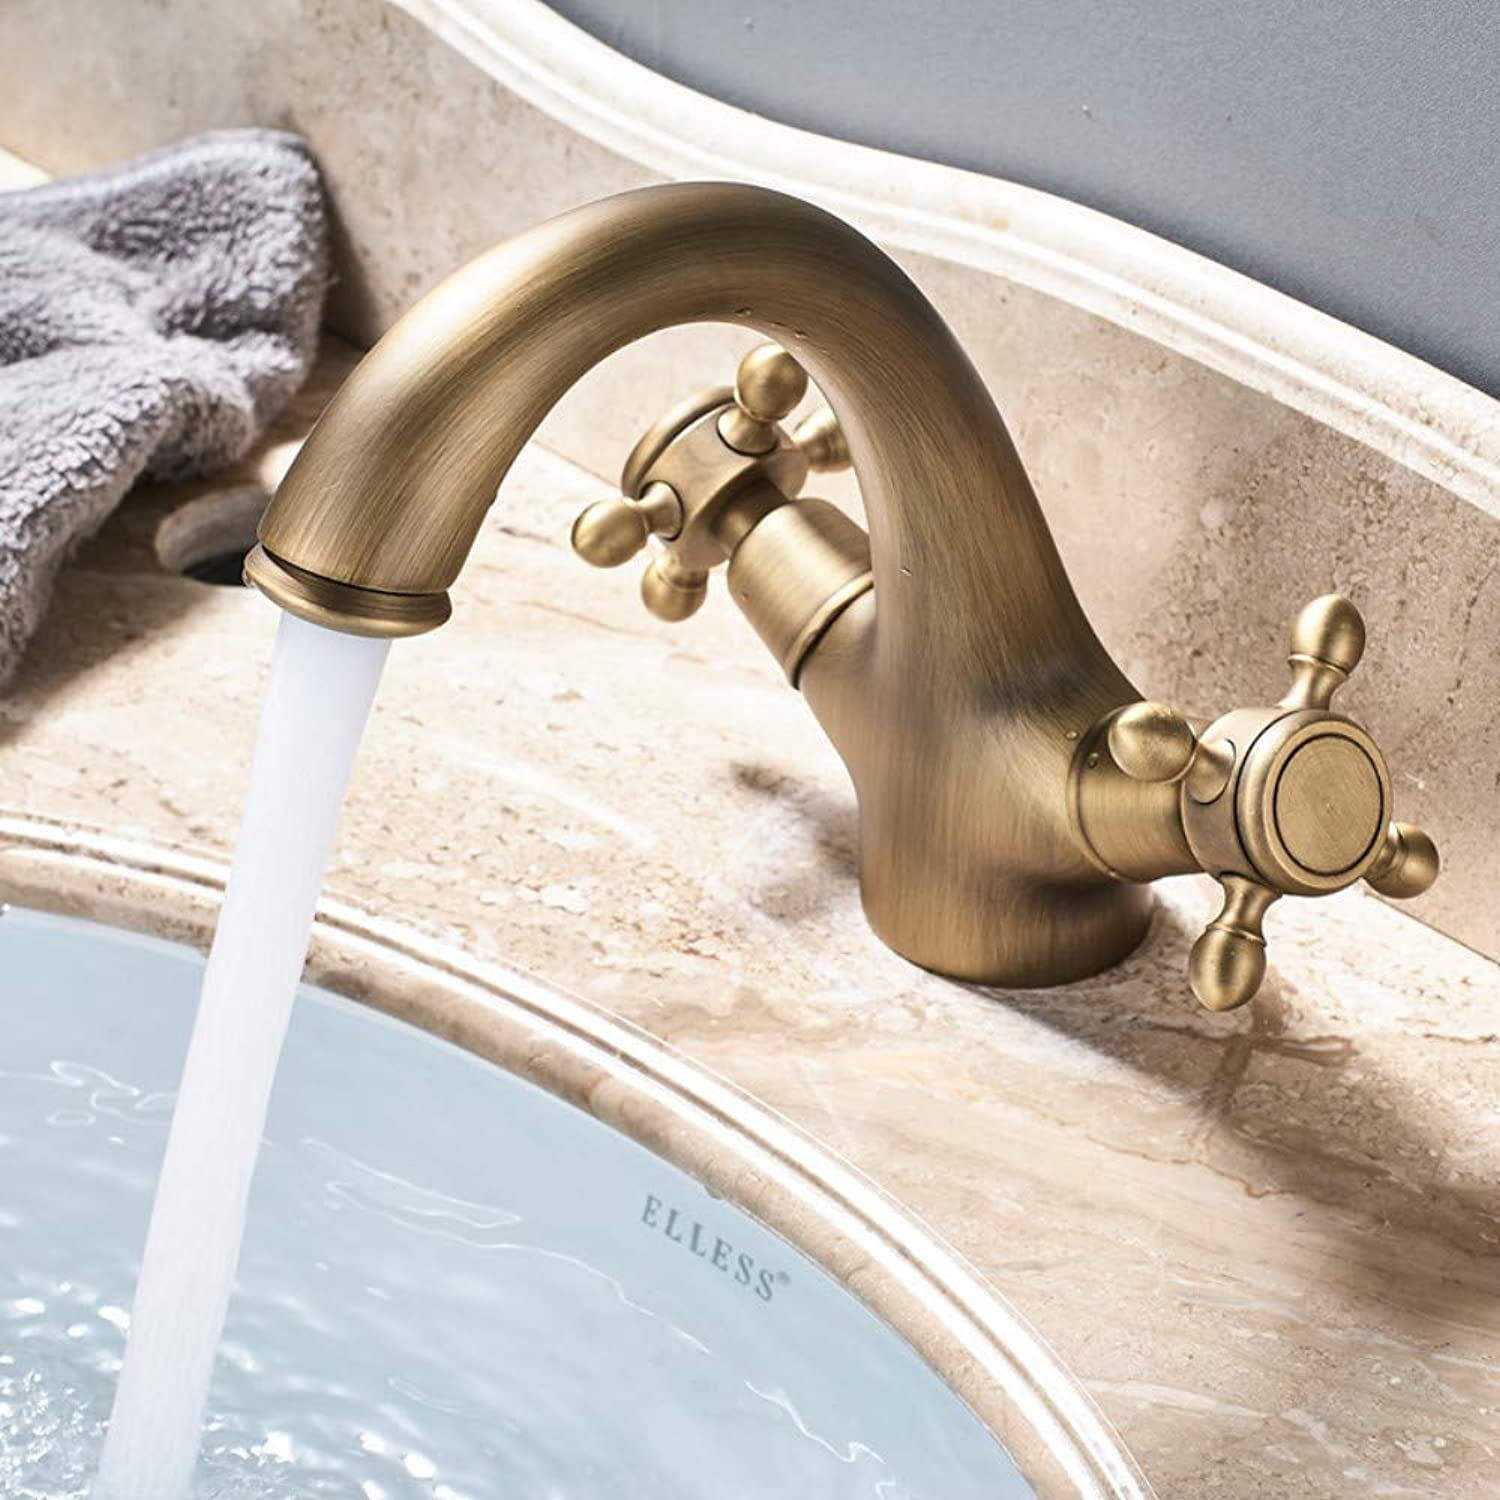 Bathroom Sink Tap Dual Handle Basin Faucet Single Hole Deck Mounted Brass Bathroom Vanity Sink Mixers Hot and Cold Tap